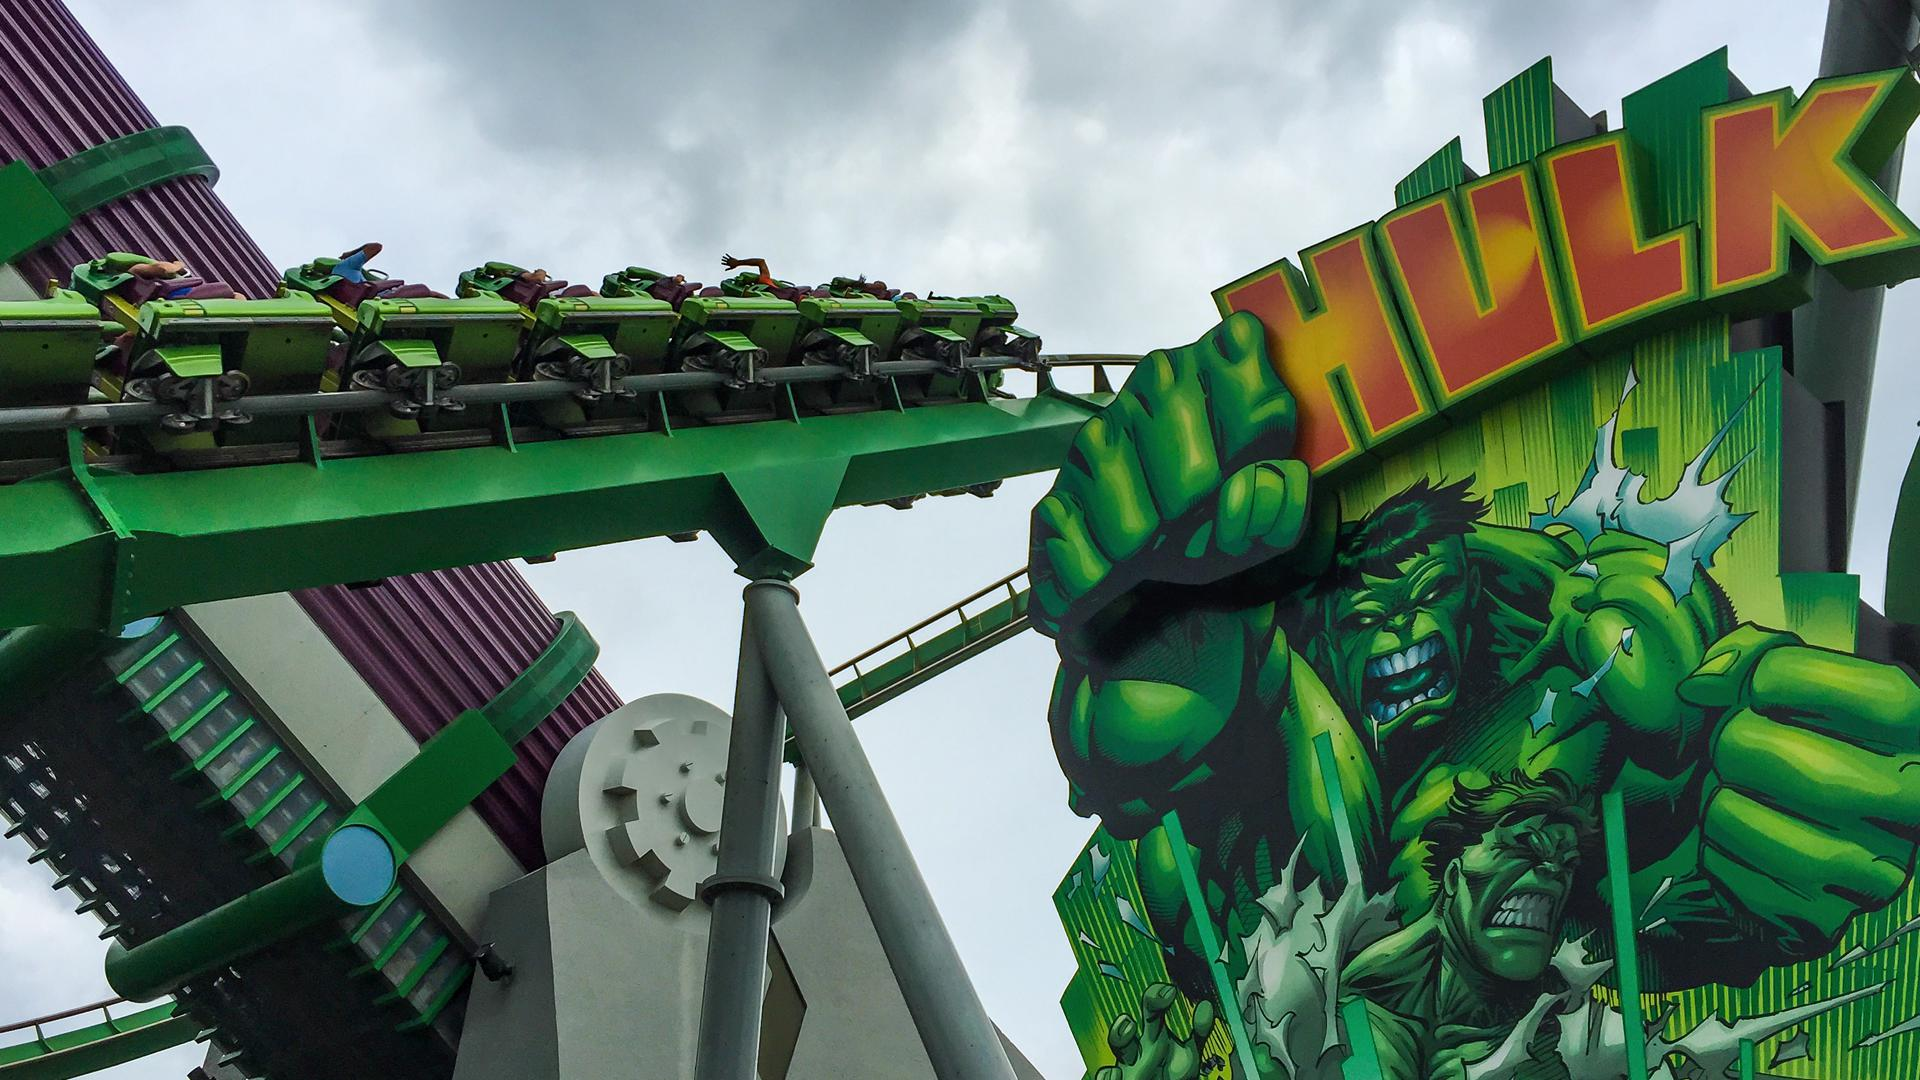 Incredible Hulk Coaster Orlando Tickets Hotels Packages